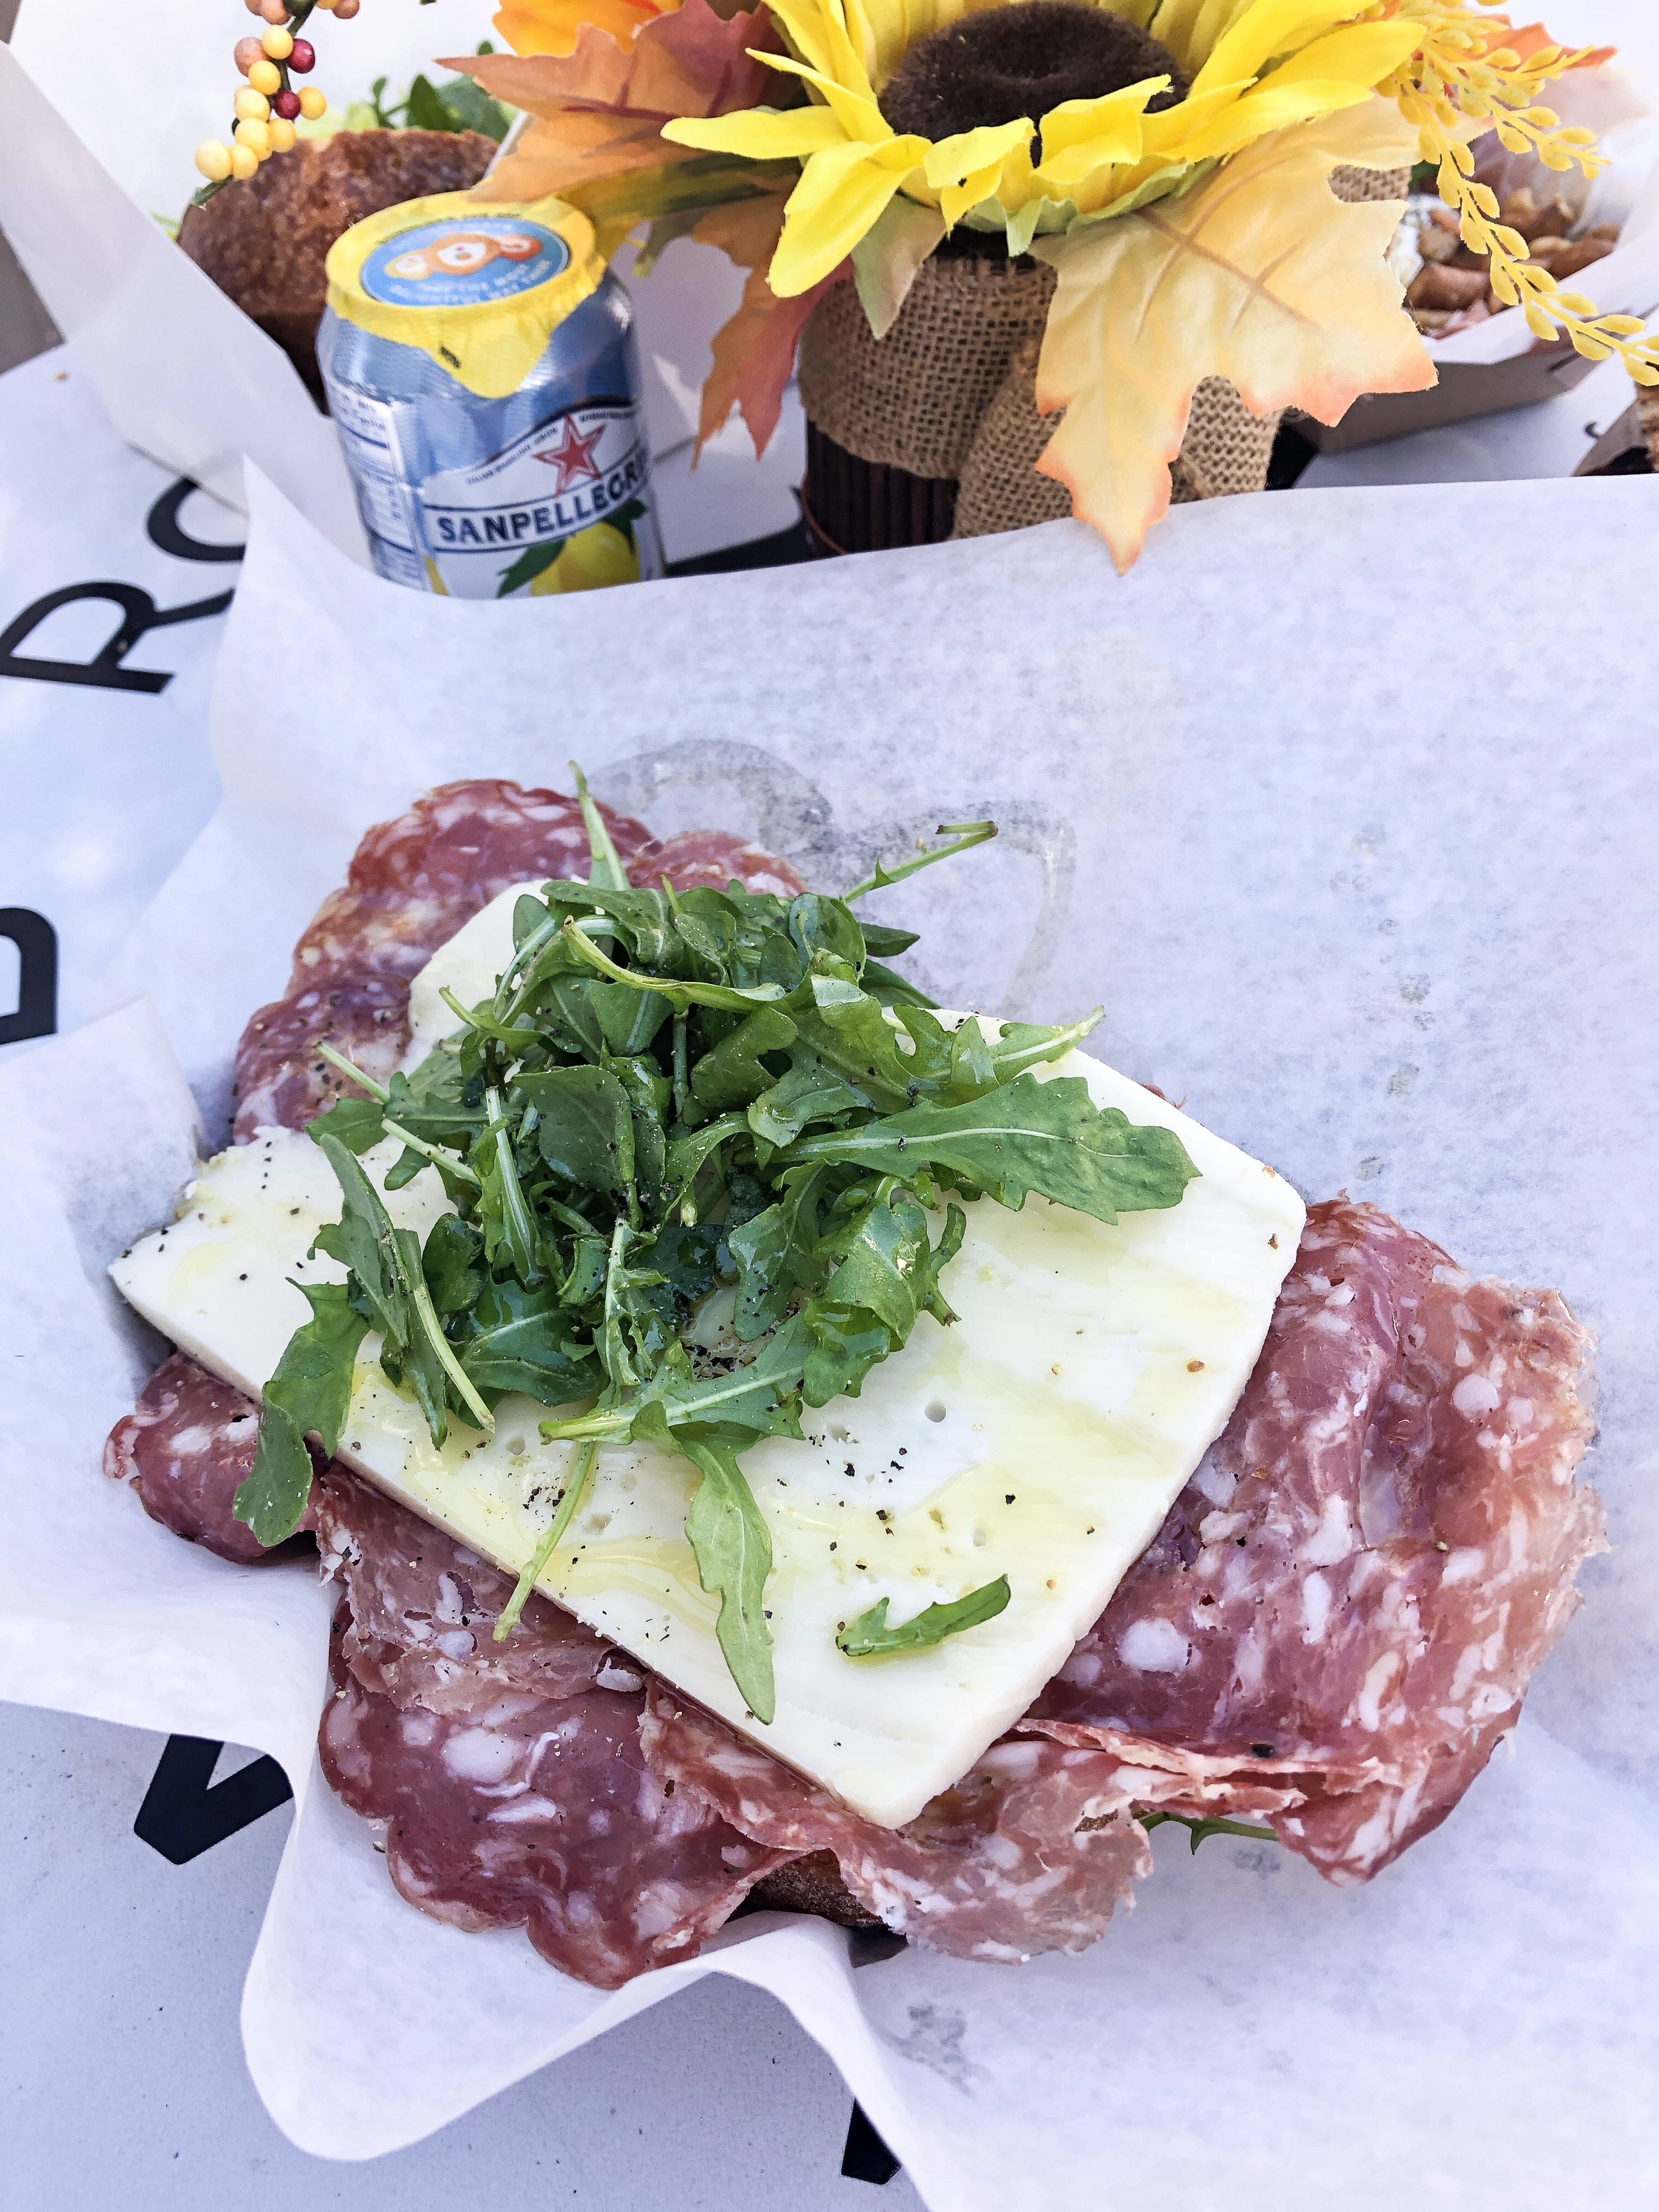 Rustico Crostini Sandwich with imported spicy Calabrese dry sausage, Pecorino cheese, homemade dijonnaise, greens Sicilian sea salt and evoo